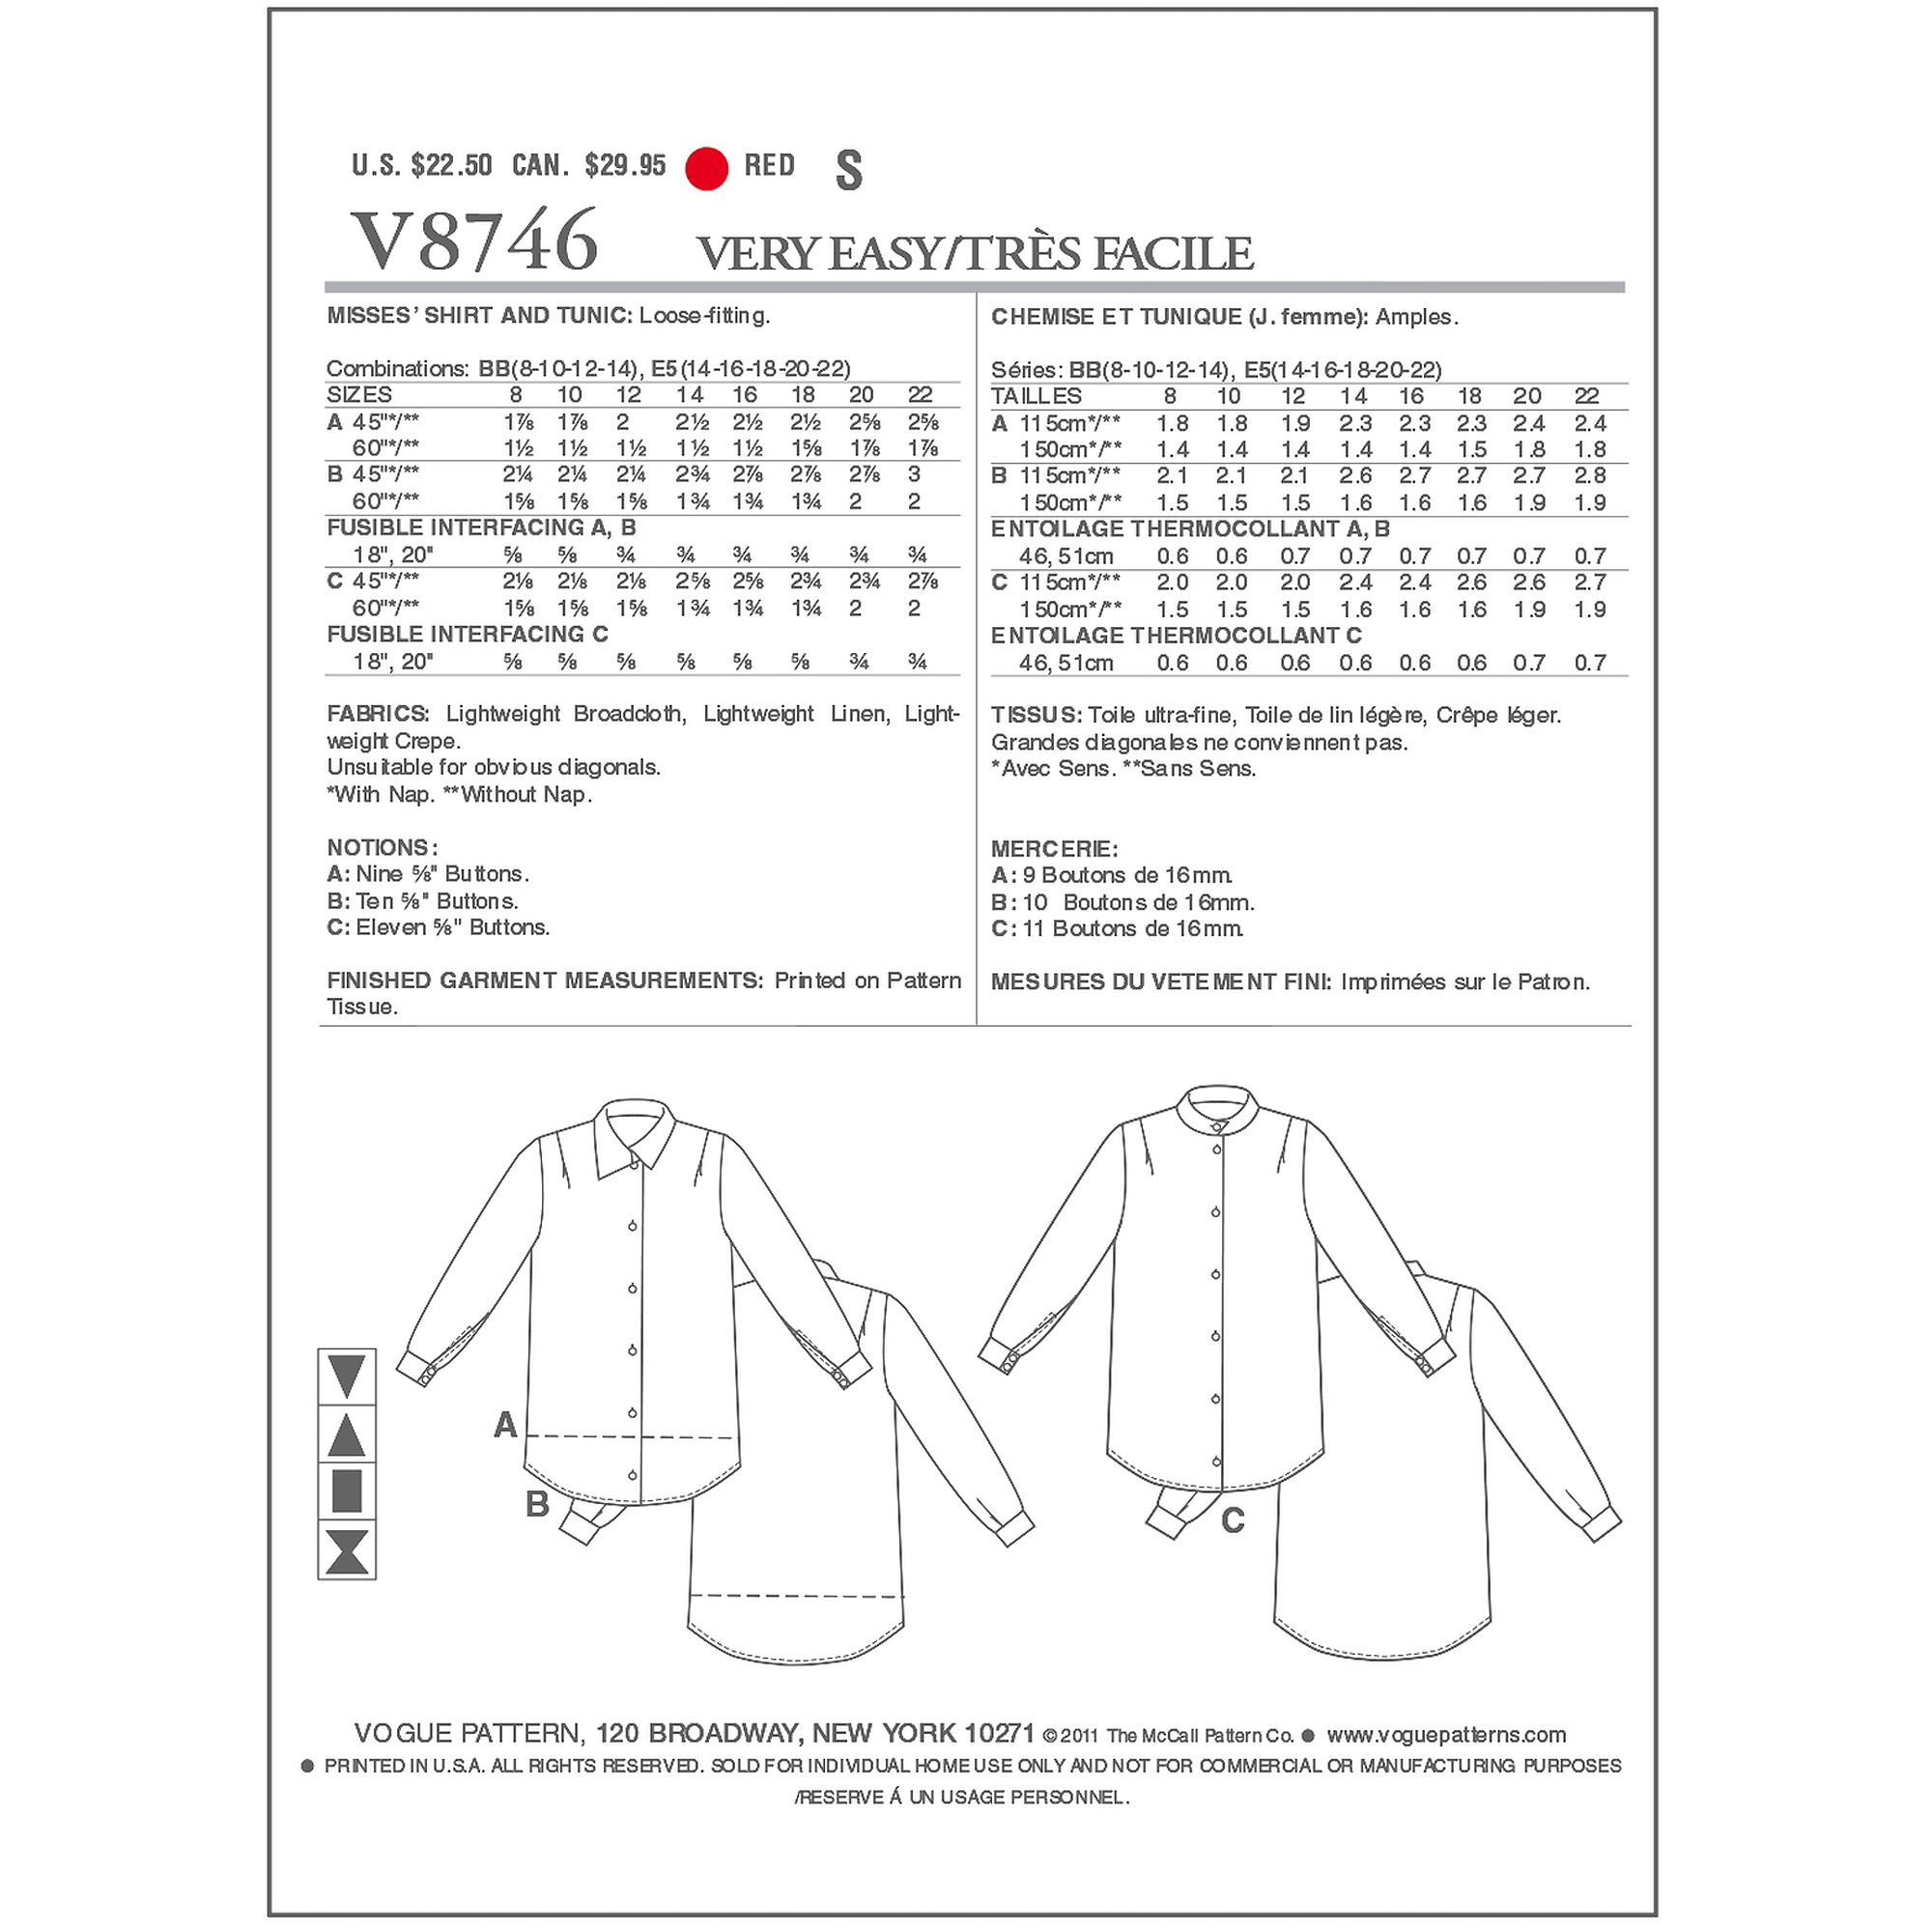 Vogue Pattern Misses' Shirt and Tunic, BB (8, 10, 12, 14)